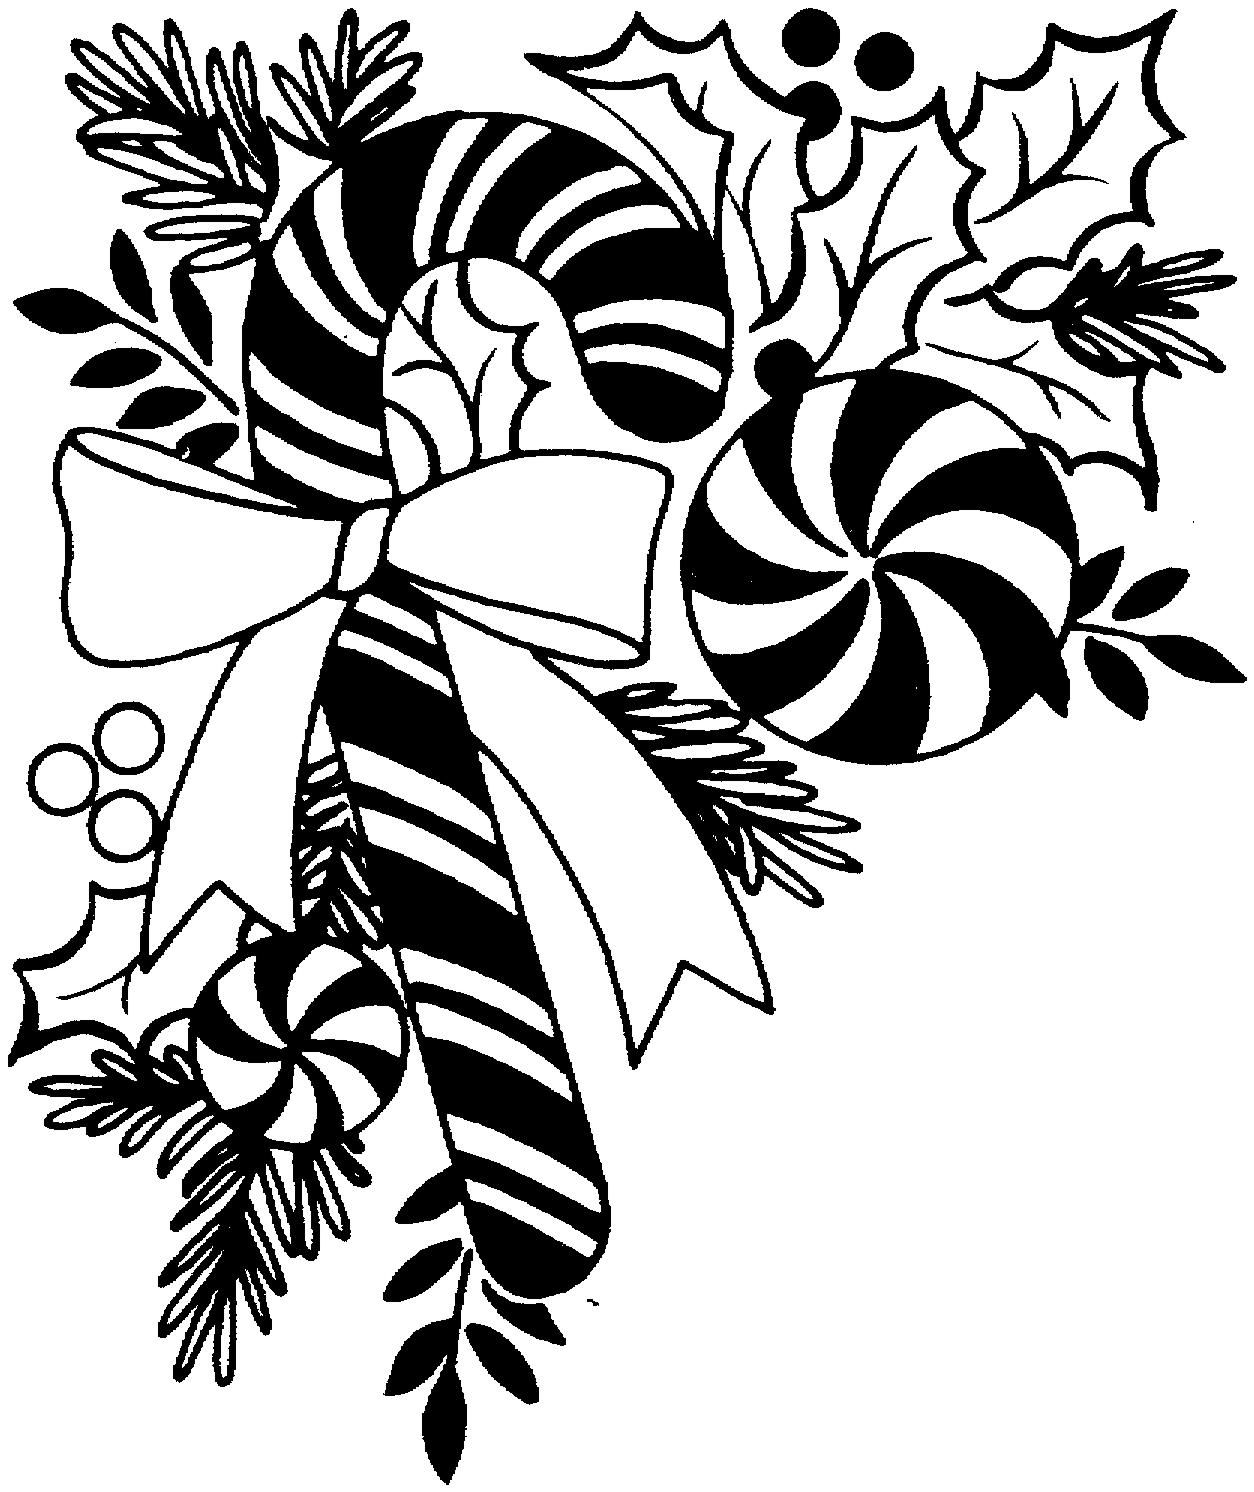 Free christmas clipart pictures black and white banner royalty free download Pin by Carolynn Coppedge on Christmas 2017 | White christmas image ... banner royalty free download